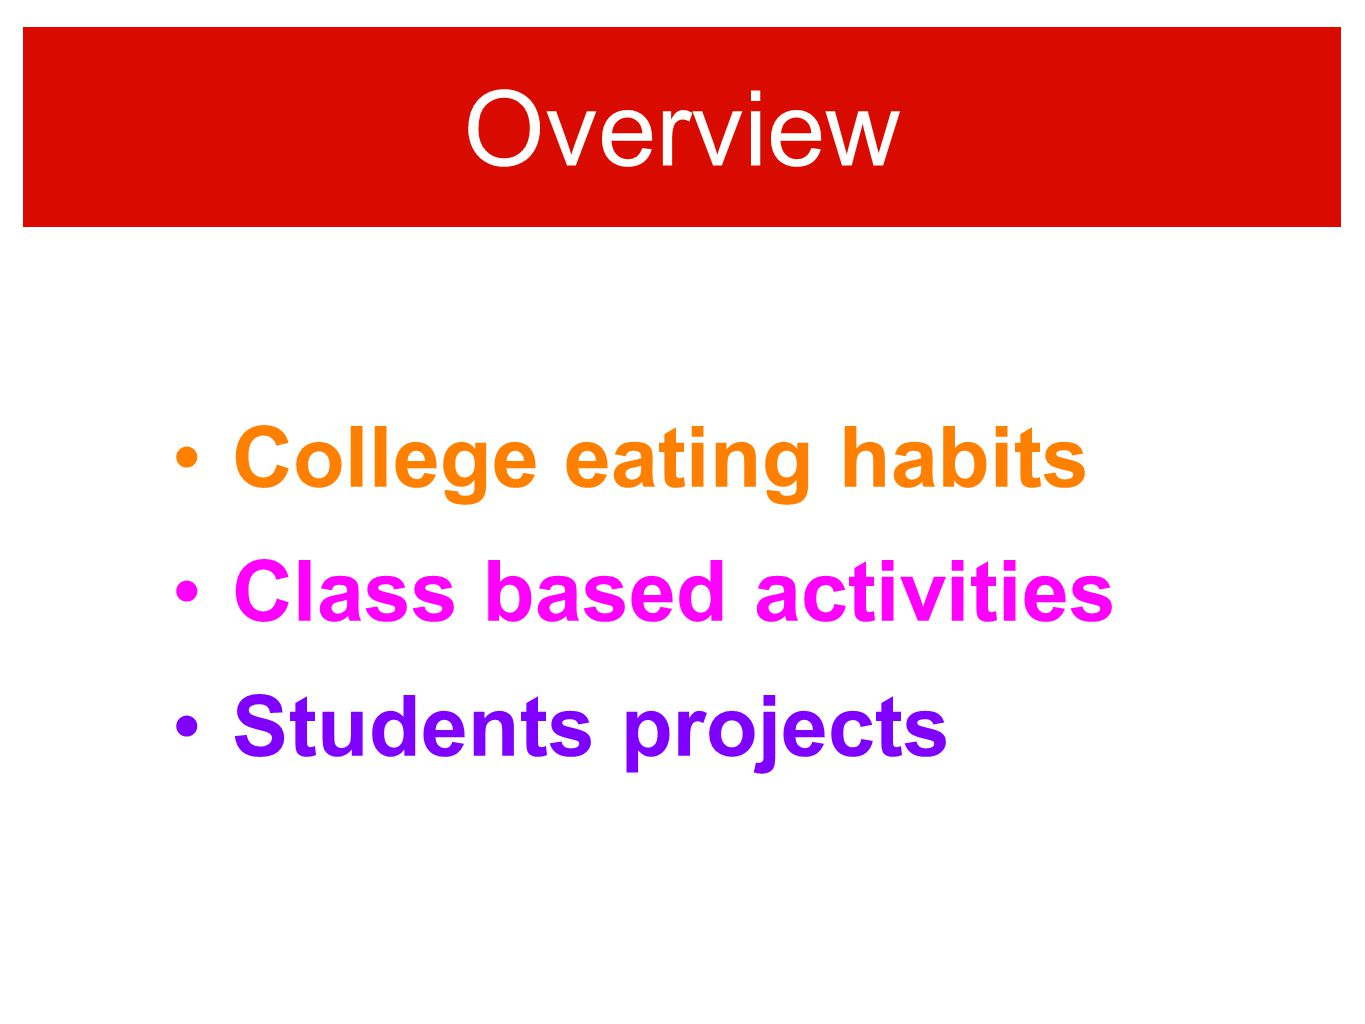 Overview College eating habits Class based activities Students projects